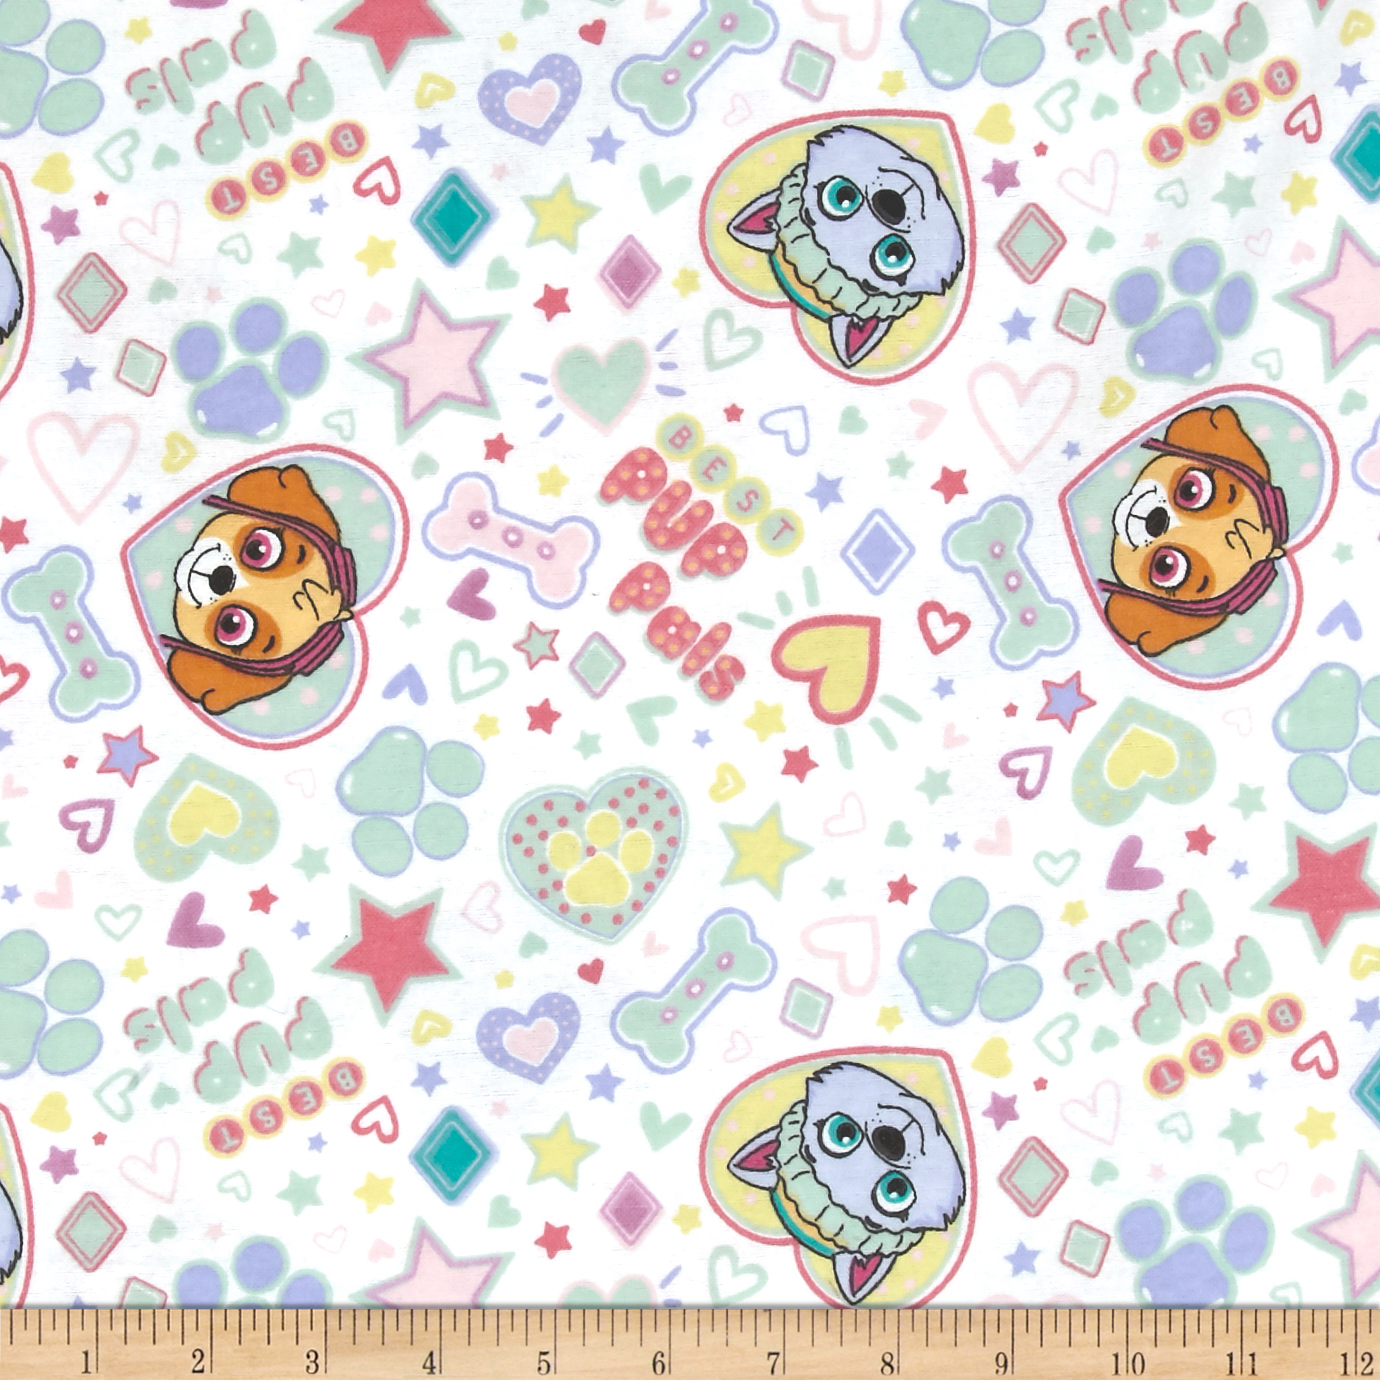 Nickelodeon Paw Patrol Pup Pals 4ever Flannel White Fabric